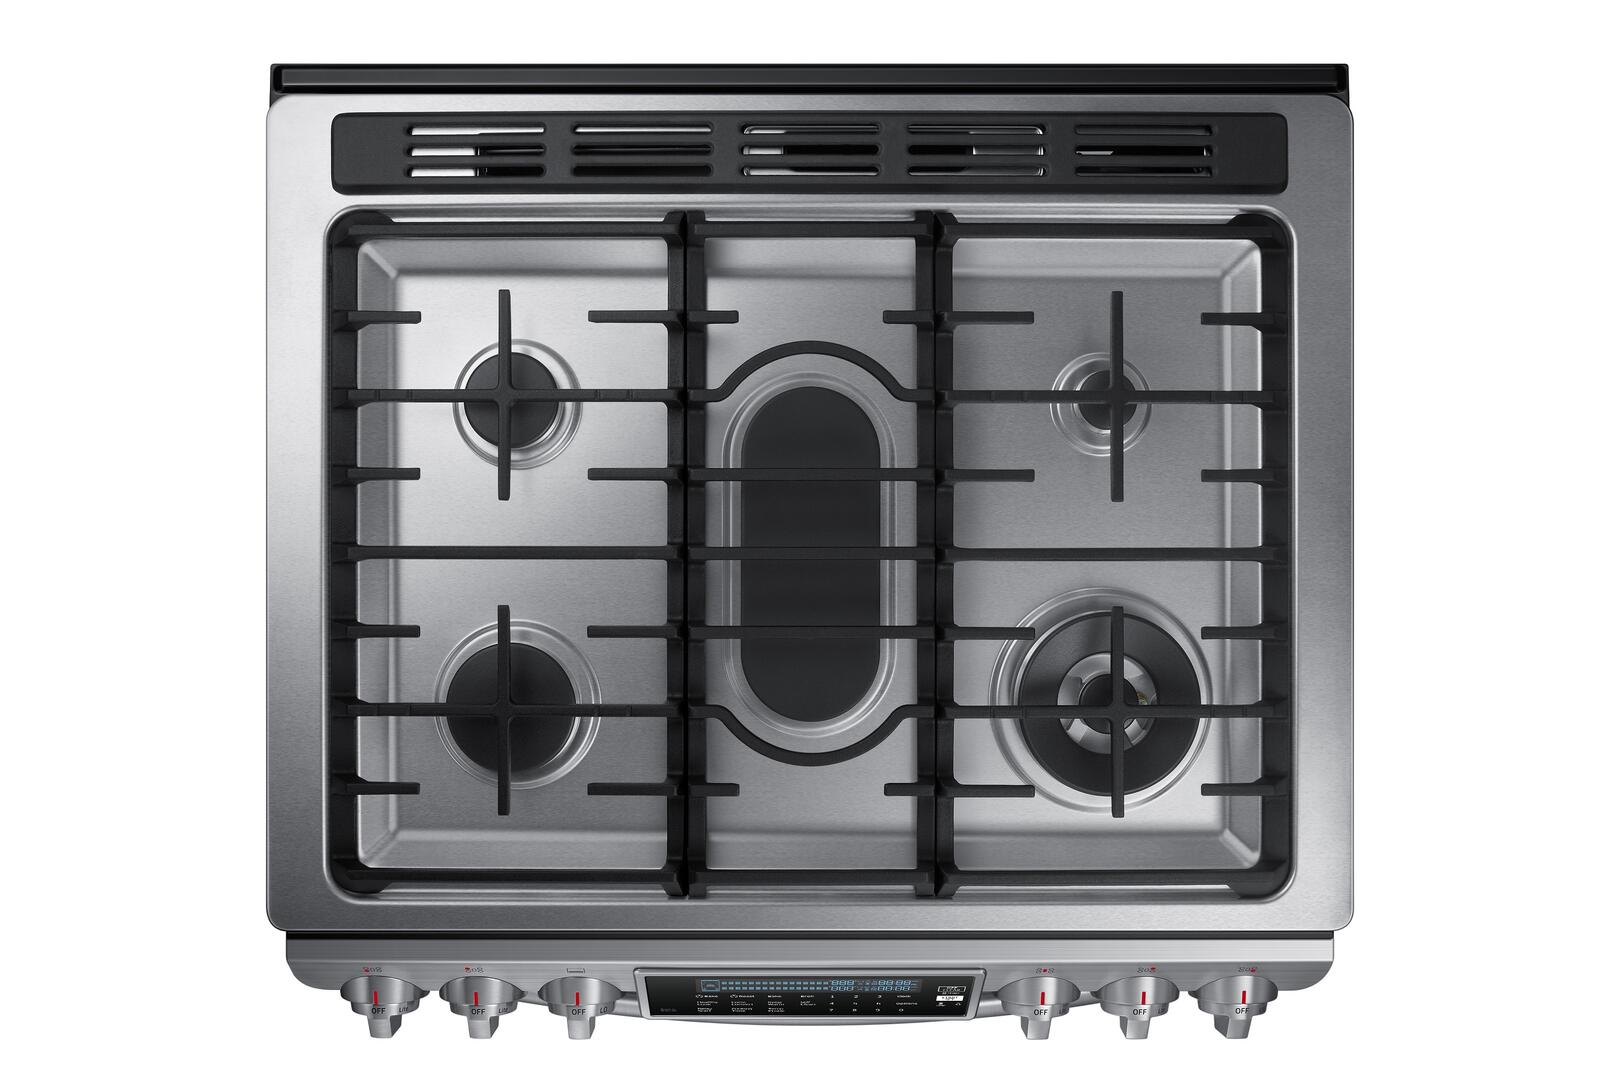 Kitchen gas stove top view -  Samsung Appliance Top View